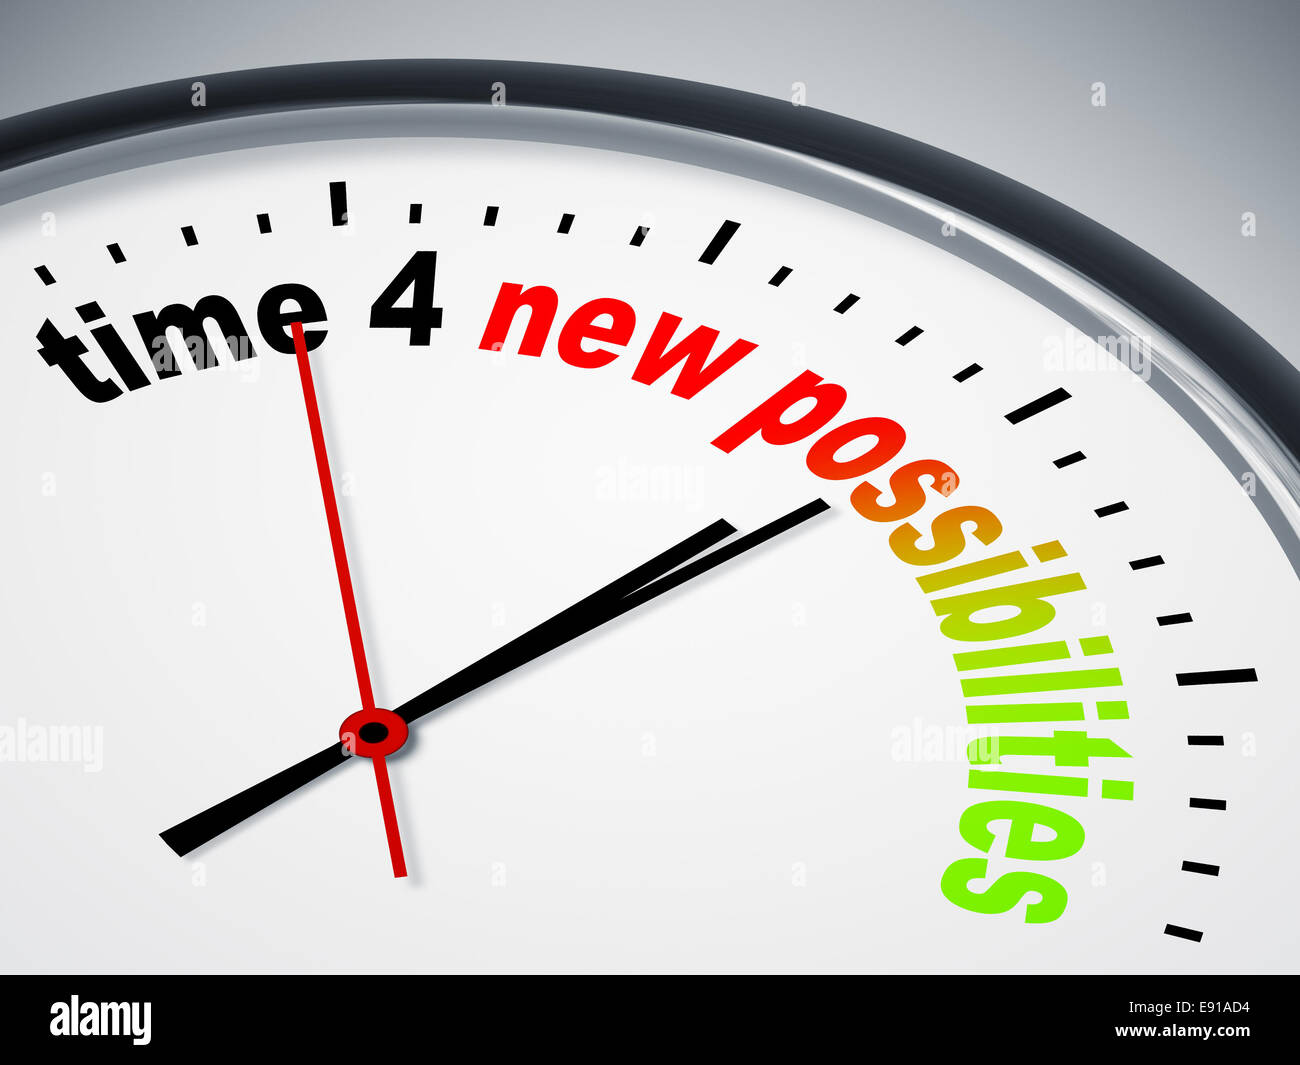 time 4 new possibilities - Stock Image